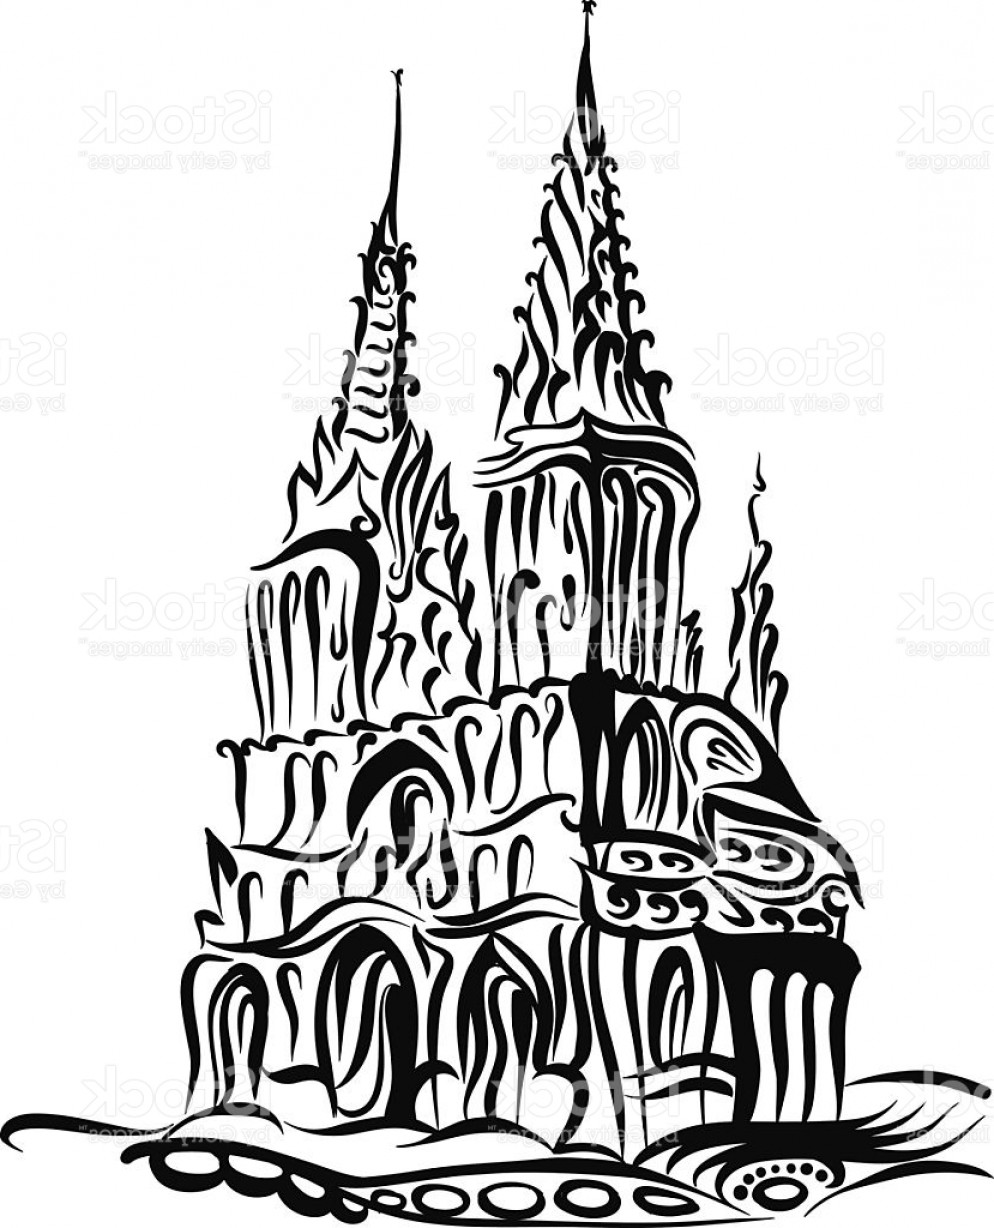 Gothic Religious Vector: Sketch Of A Catholic Church In The Gothic Style Gm